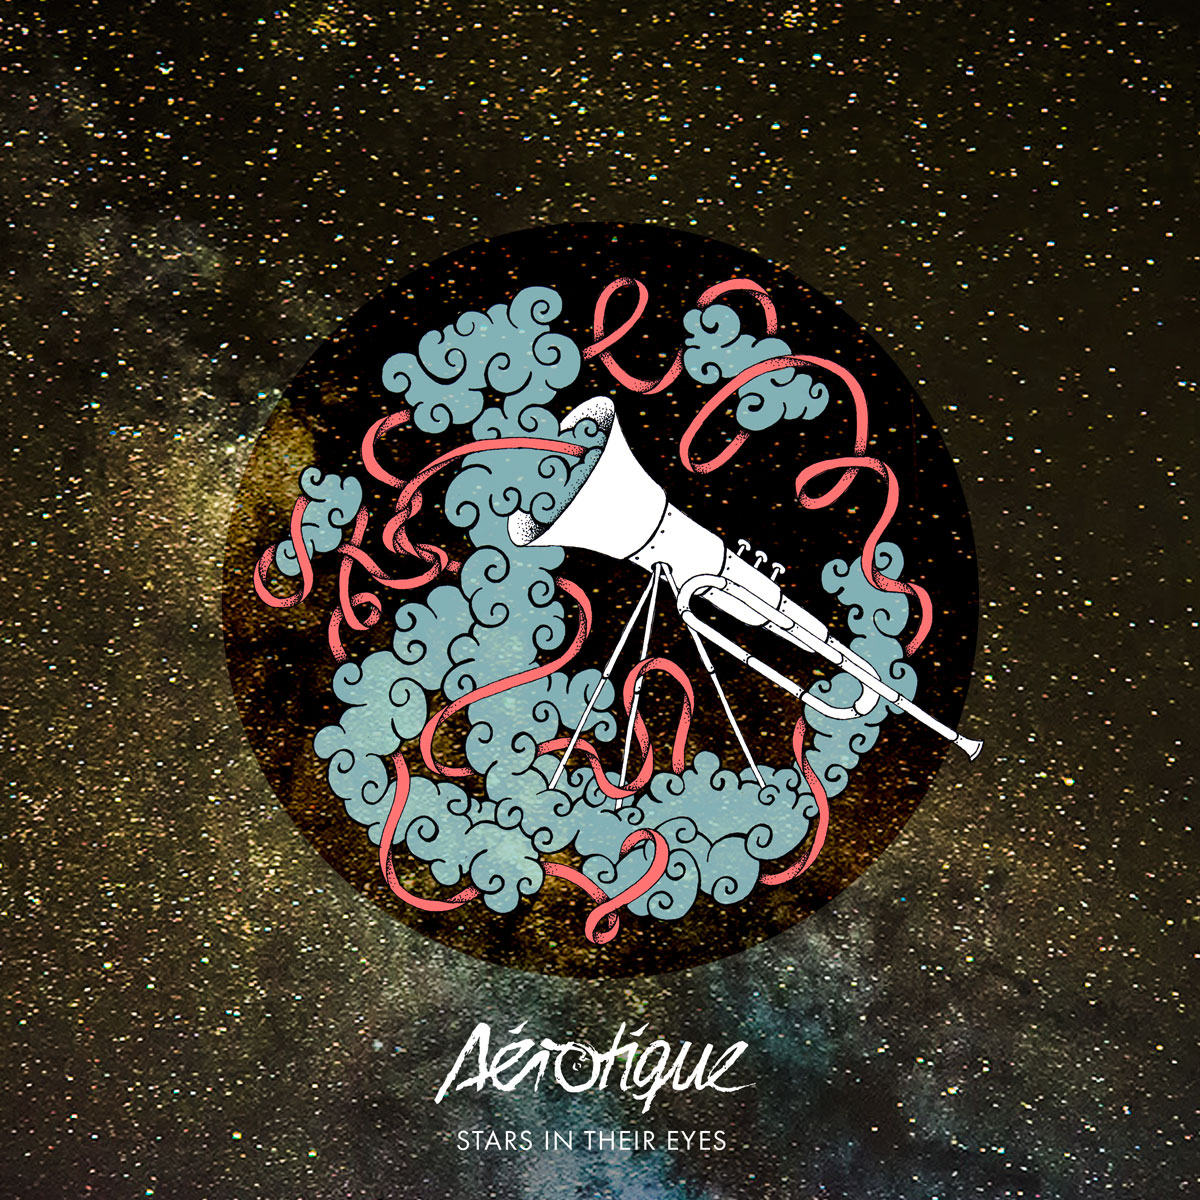 Aerotique - the cloud